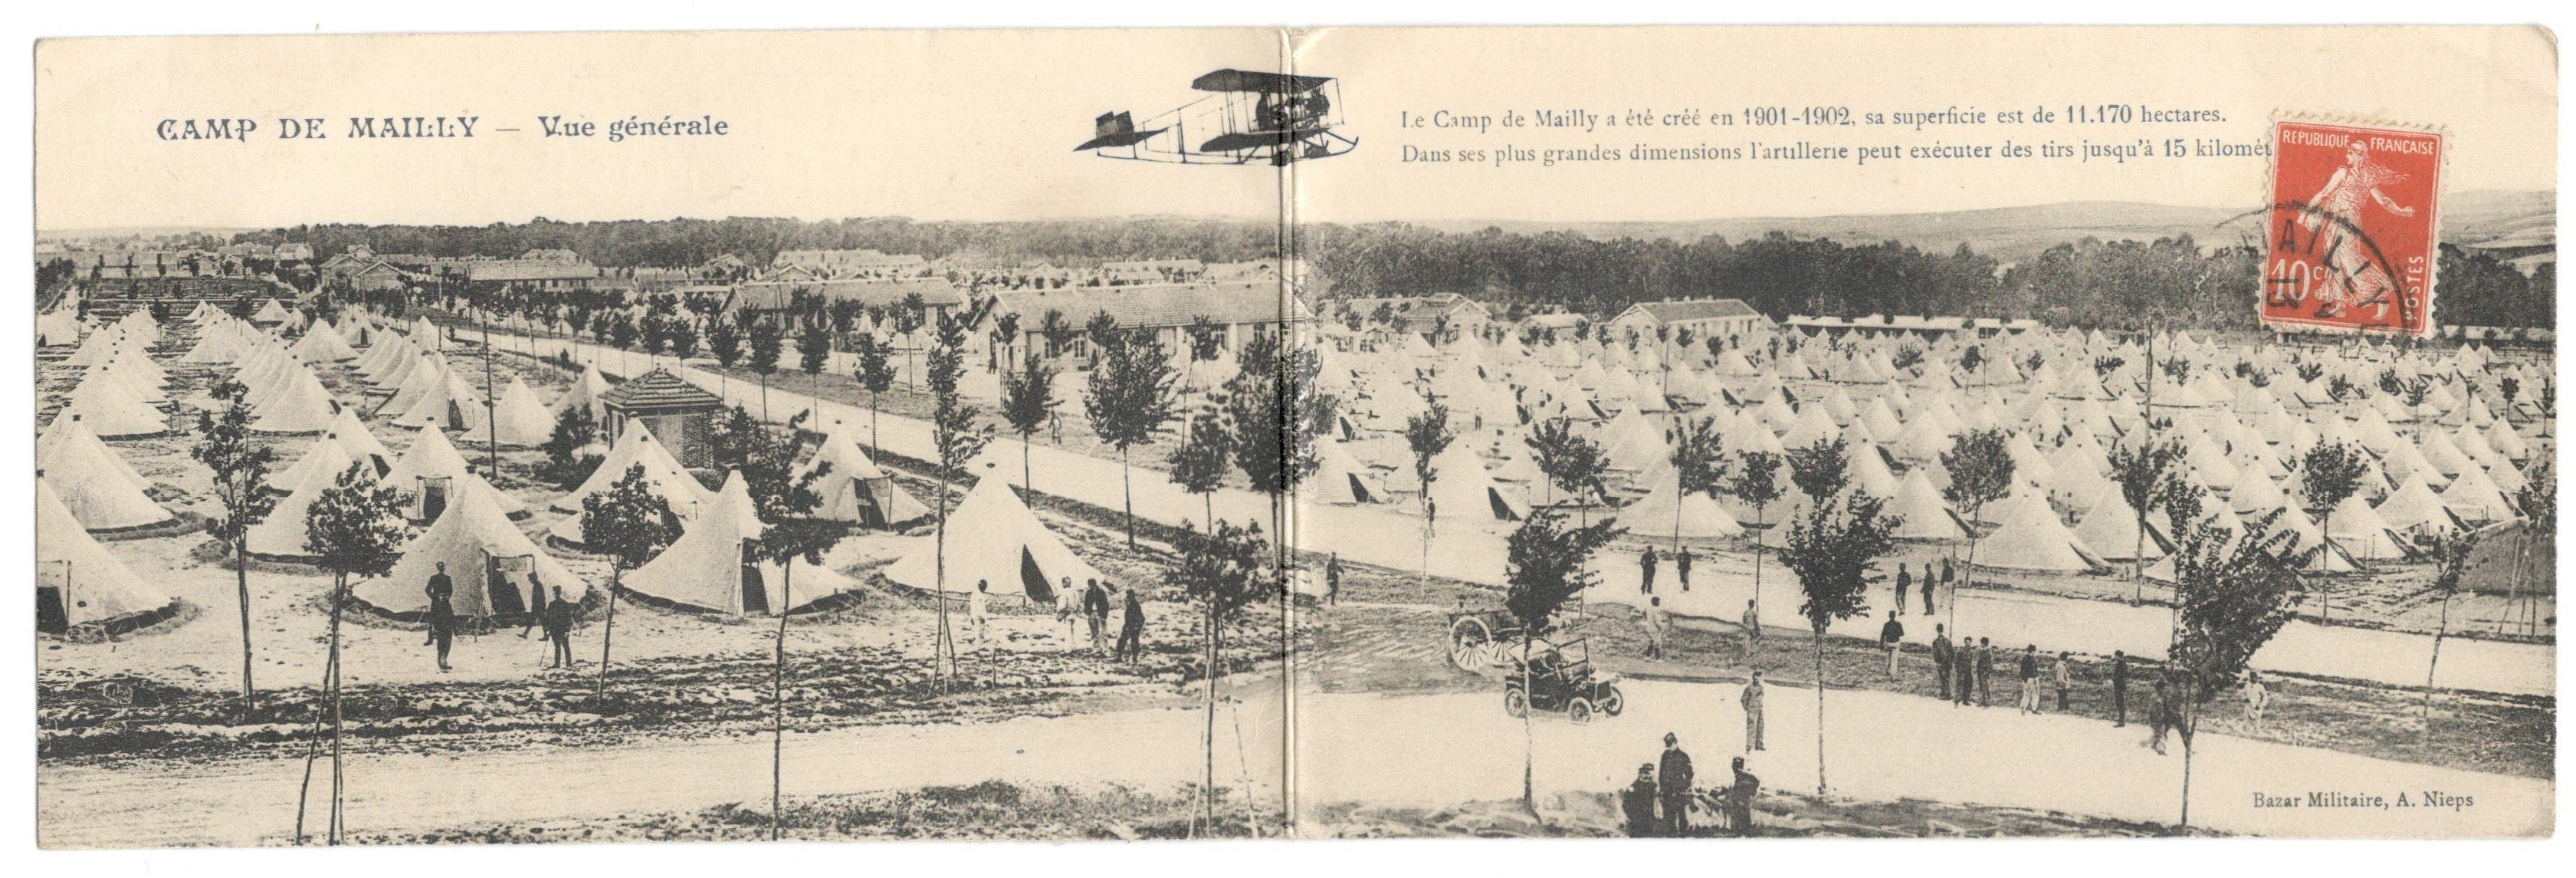 CAMP DE MAILLY - WITH MESSAGE ON THE BACK